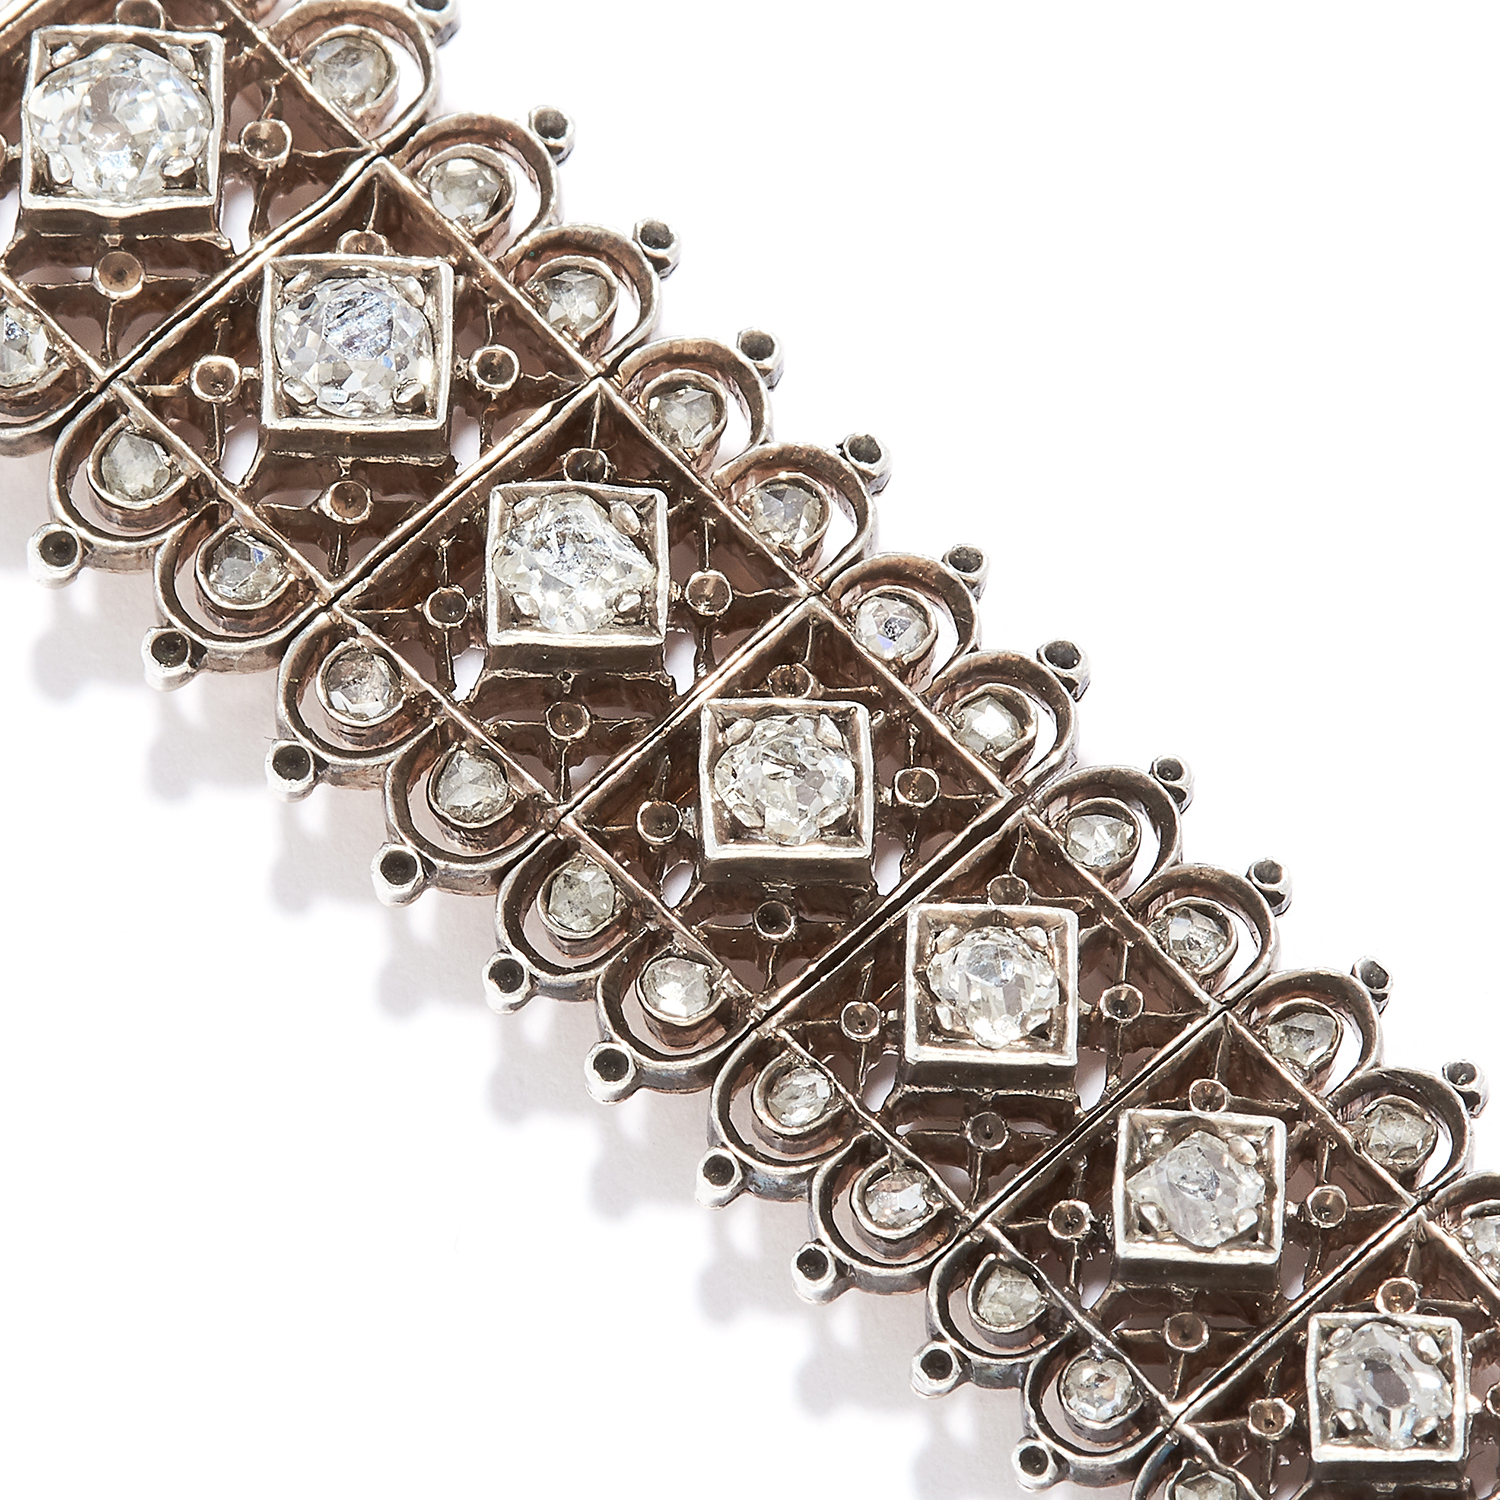 ANTIQUE DIAMOND BRACELET in high carat yellow gold, set with a row of old cut diamonds in detailed - Image 2 of 3